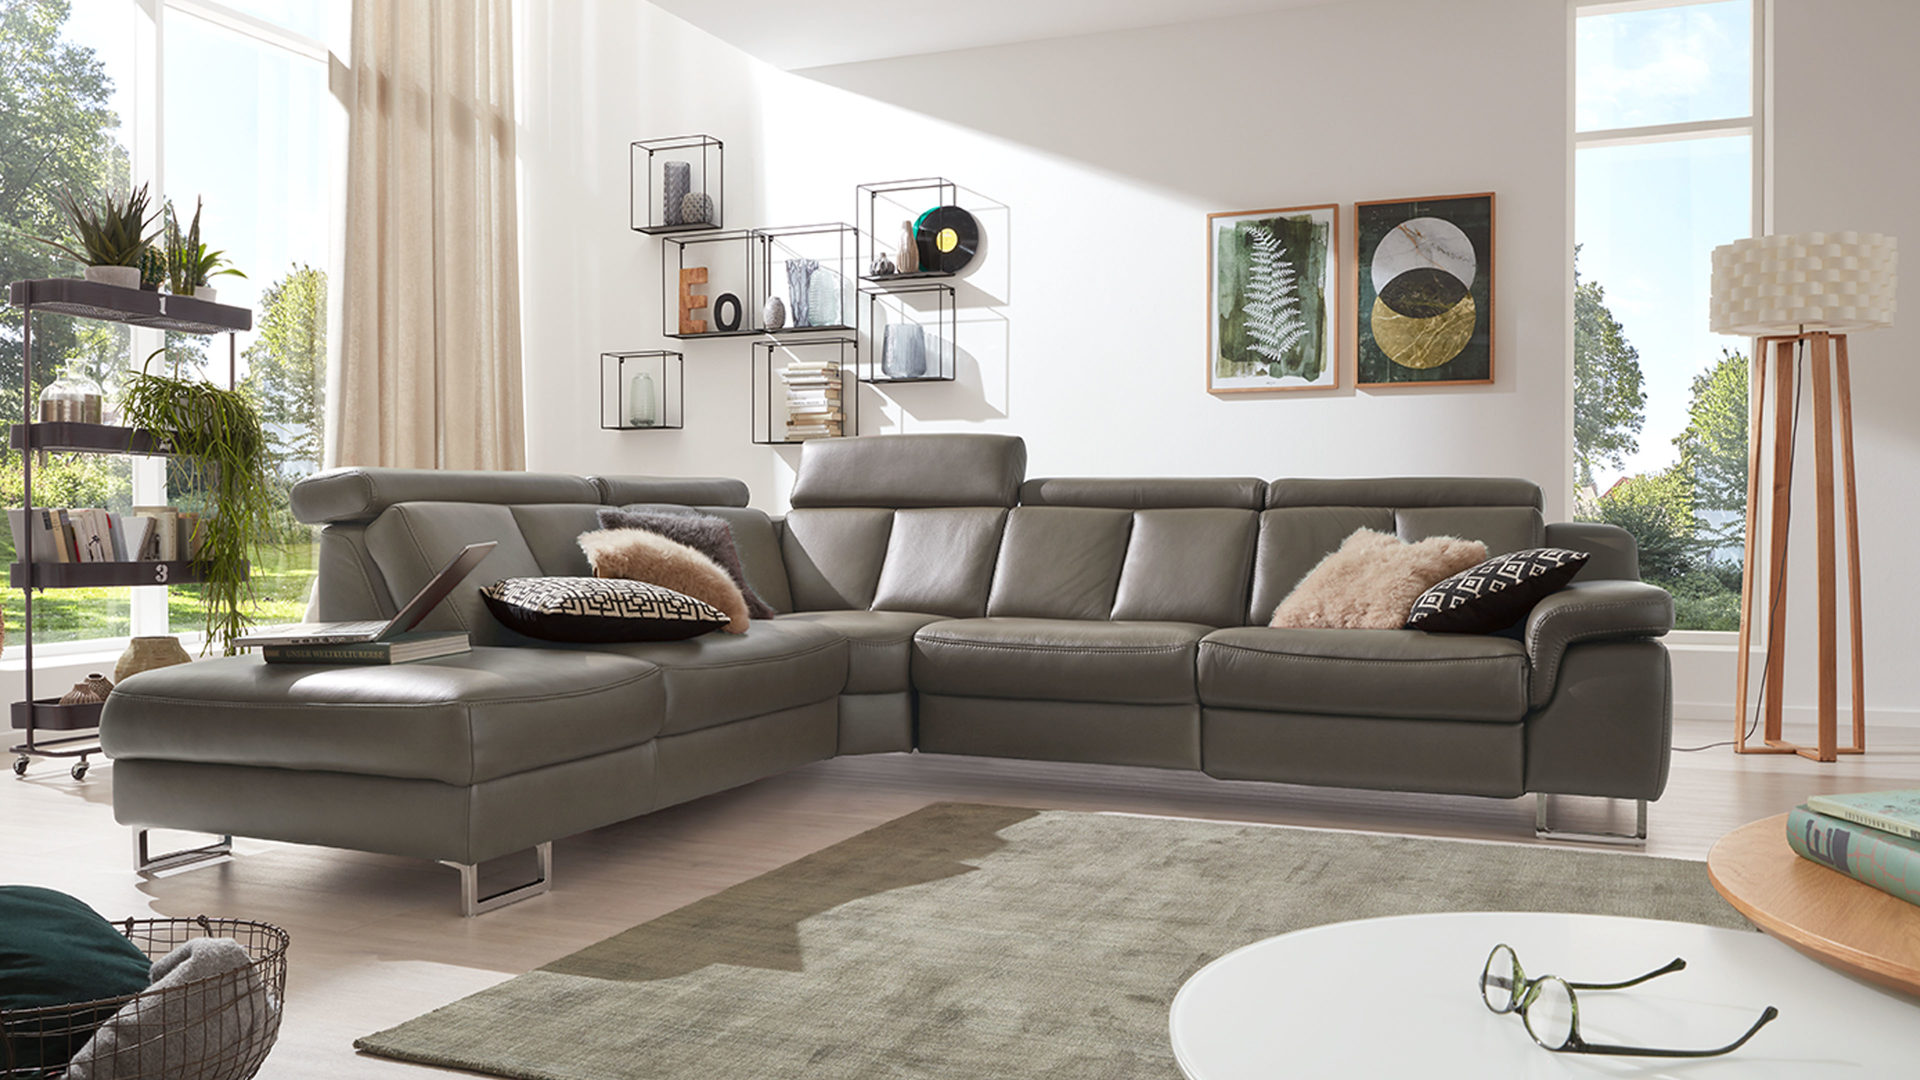 Ecksofa Interliving aus Leder in Grau Interliving Sofa Serie 4050 – Eckkombination rauchfarbenes LongLife-Leder Cloudy smoke & Chromfüße – Schenkelmaß ca. 261 x 300 cm